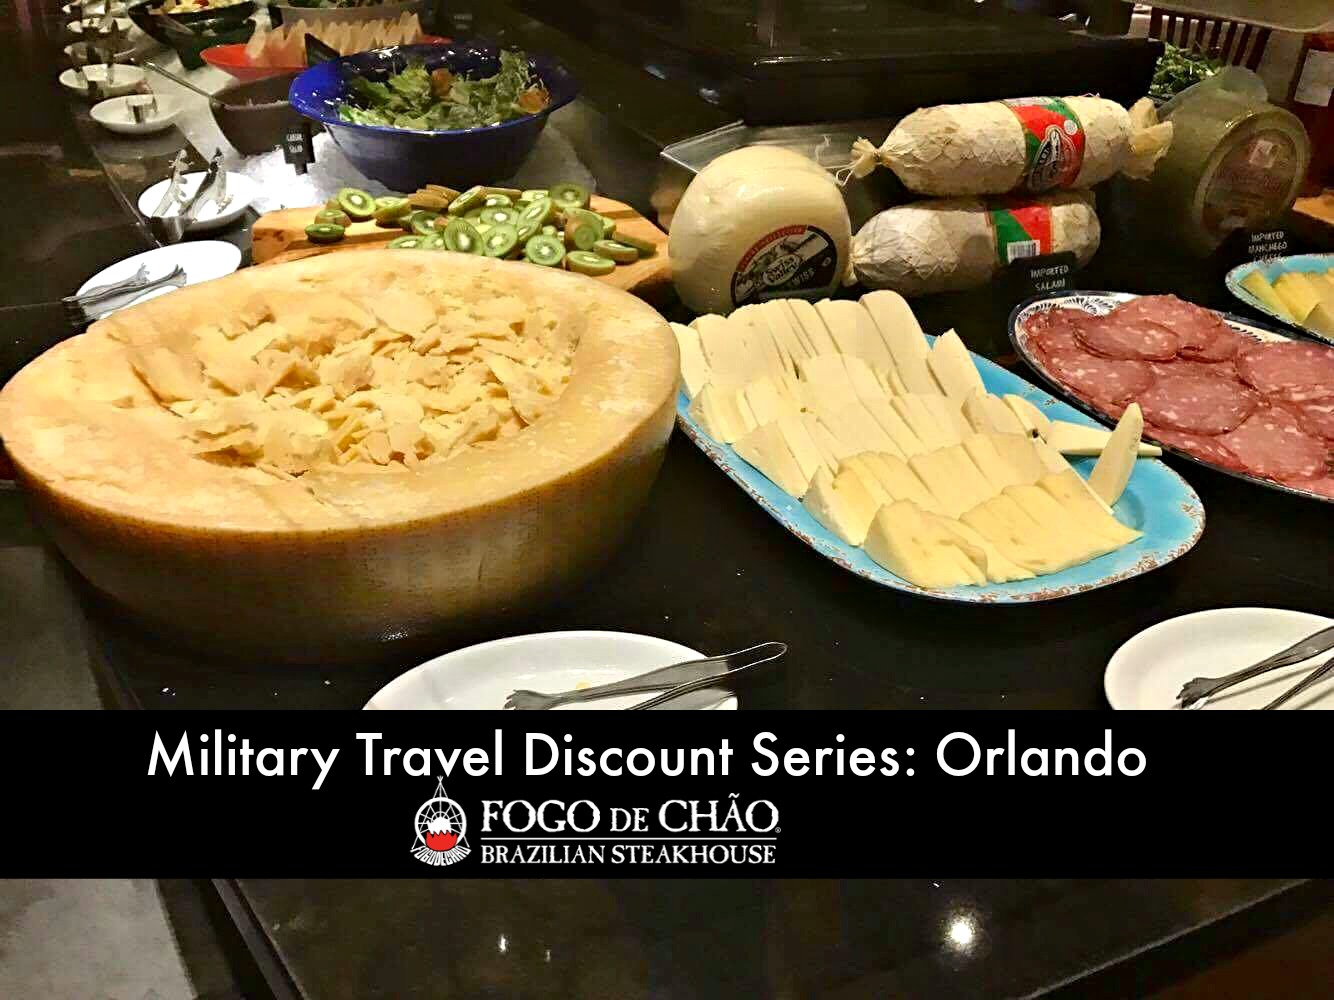 Military Discount Travel Series: Fogo de Chao Brazilian Steakhouse Orlando Florida